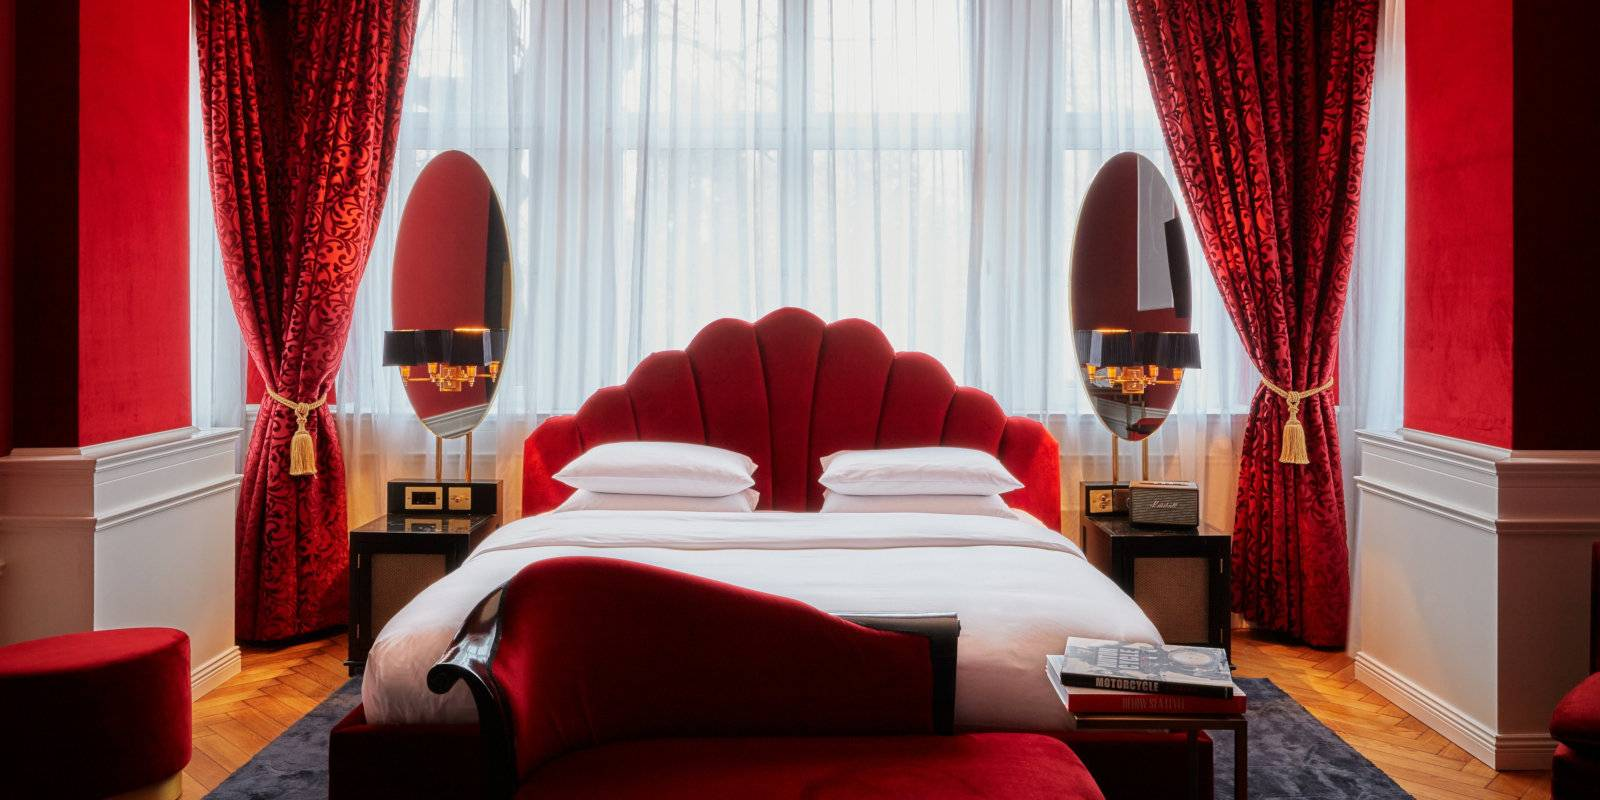 The Provocateur Berlin is a very sexy hotel which also offers a sexy couples' package and lots of erotic details!